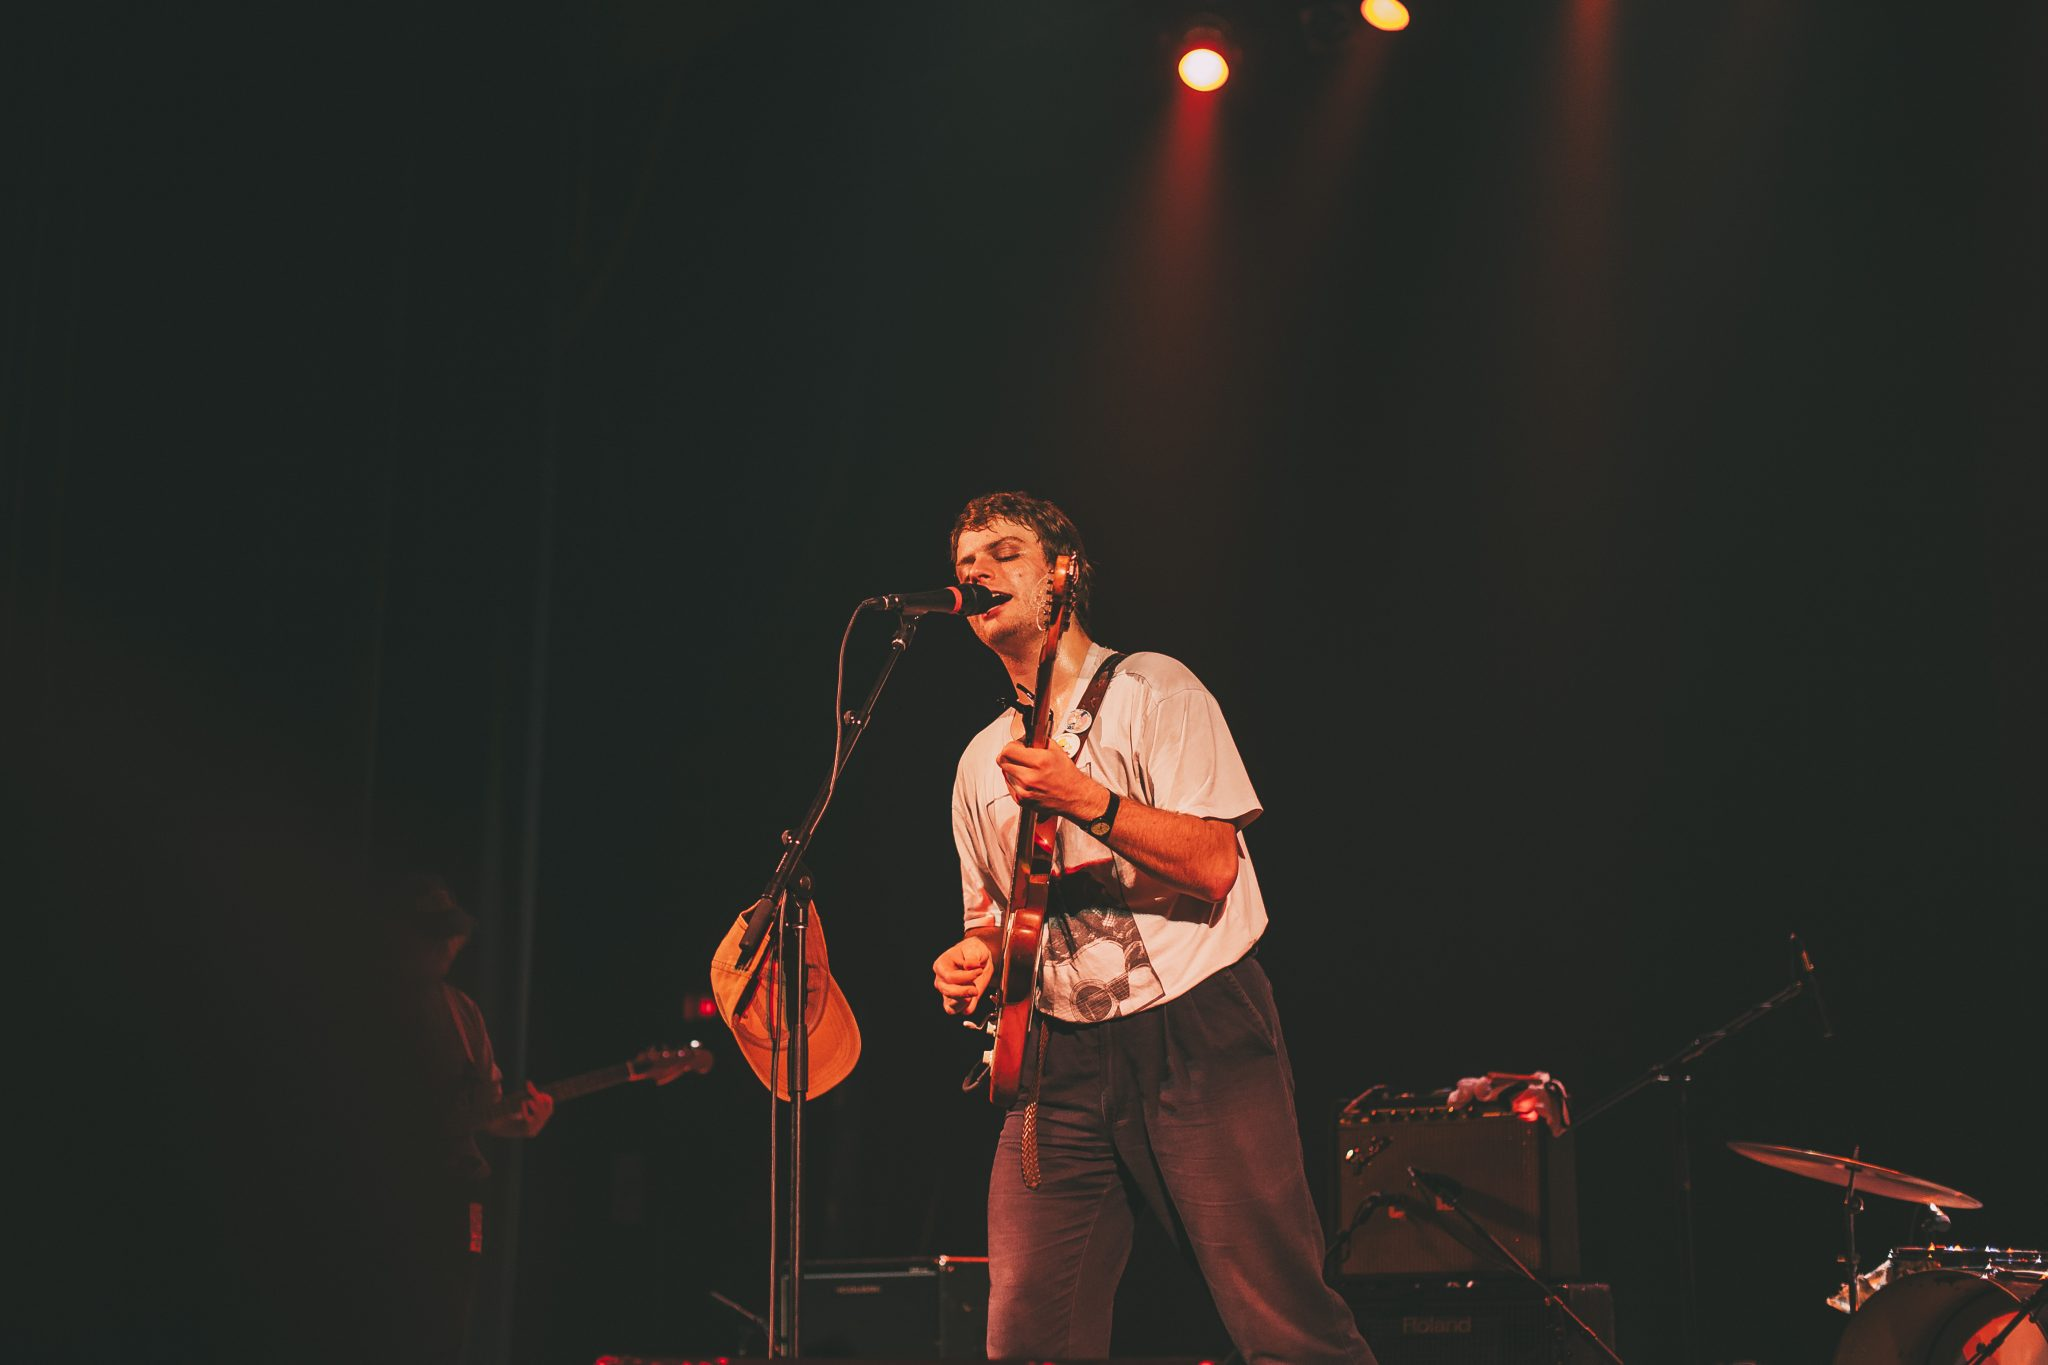 archives for 2015 the show last night mac demarco alex calder at the riverside theater in milwaukee wisconsin